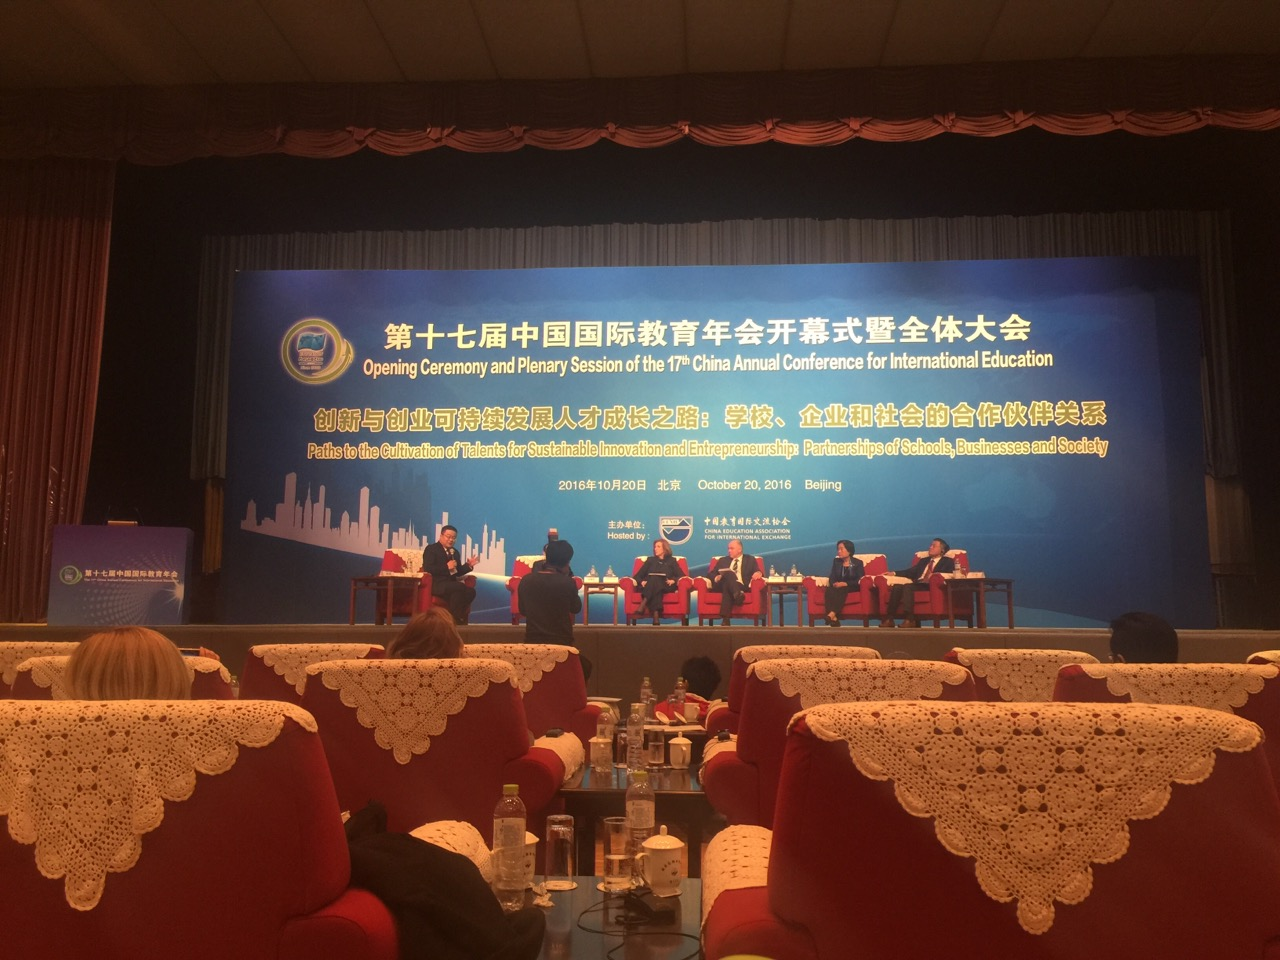 The Chinese Ministry of Education's conference